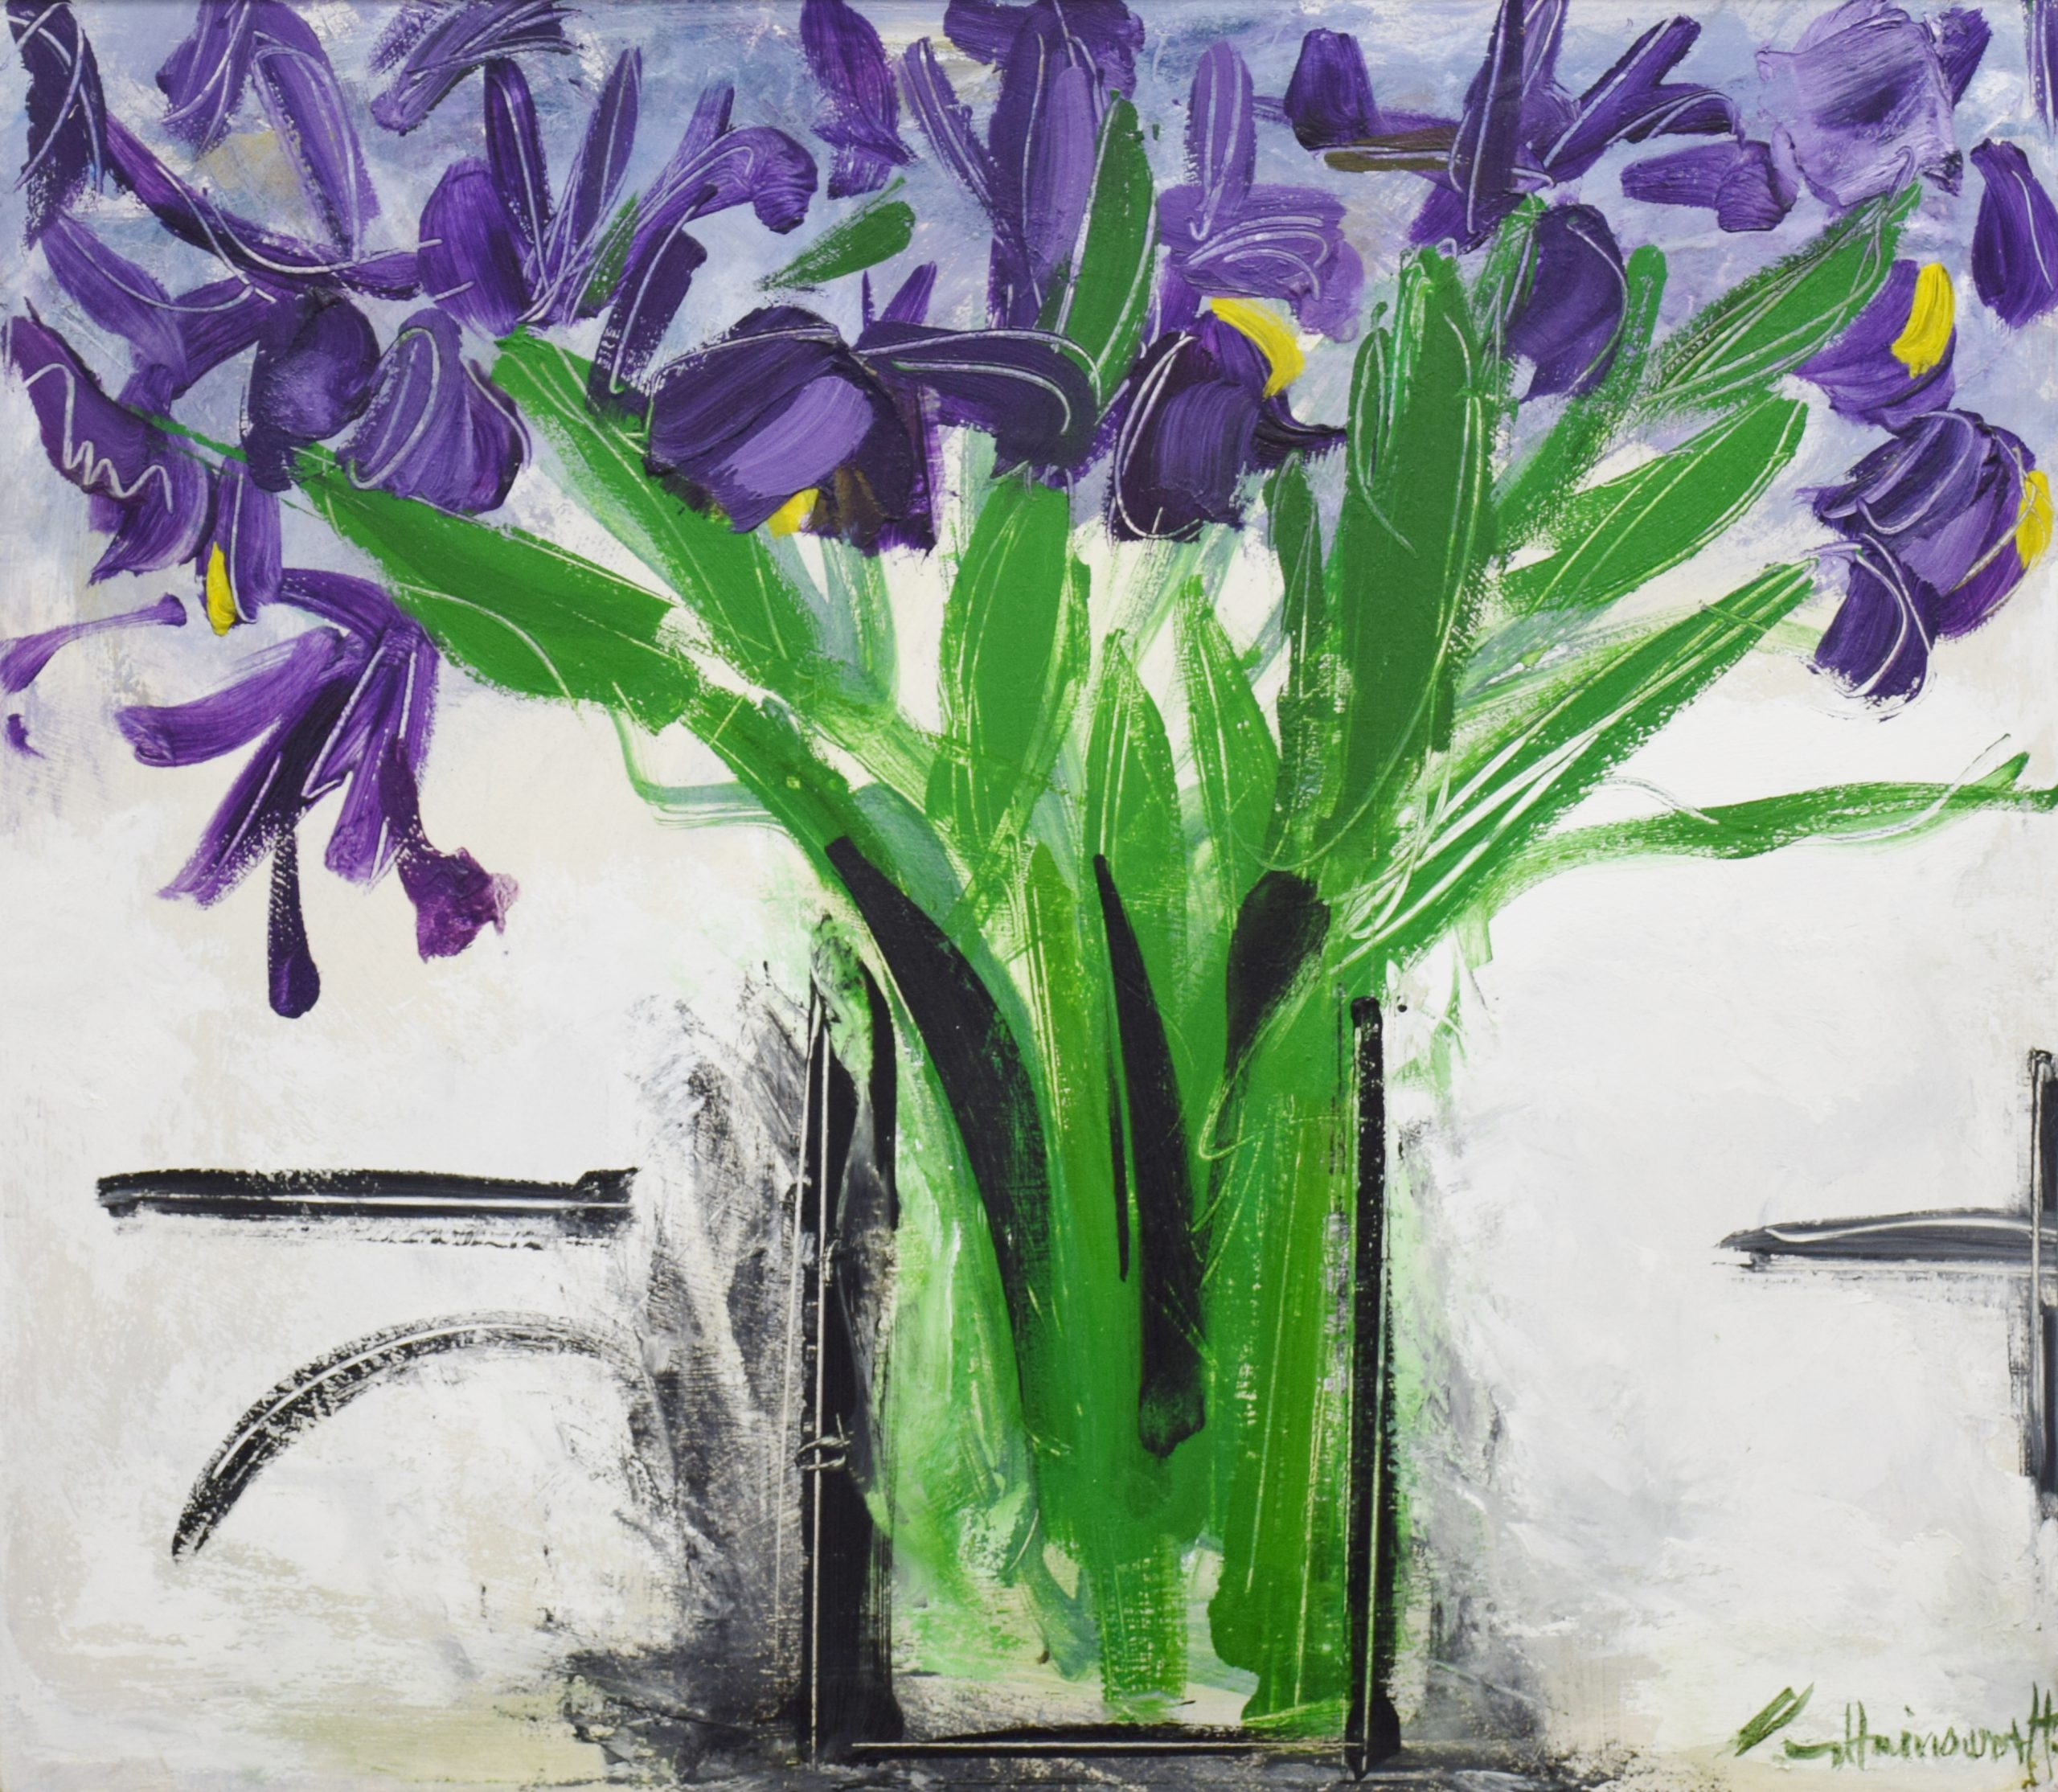 Irises by George Hainsworth, Oil on board